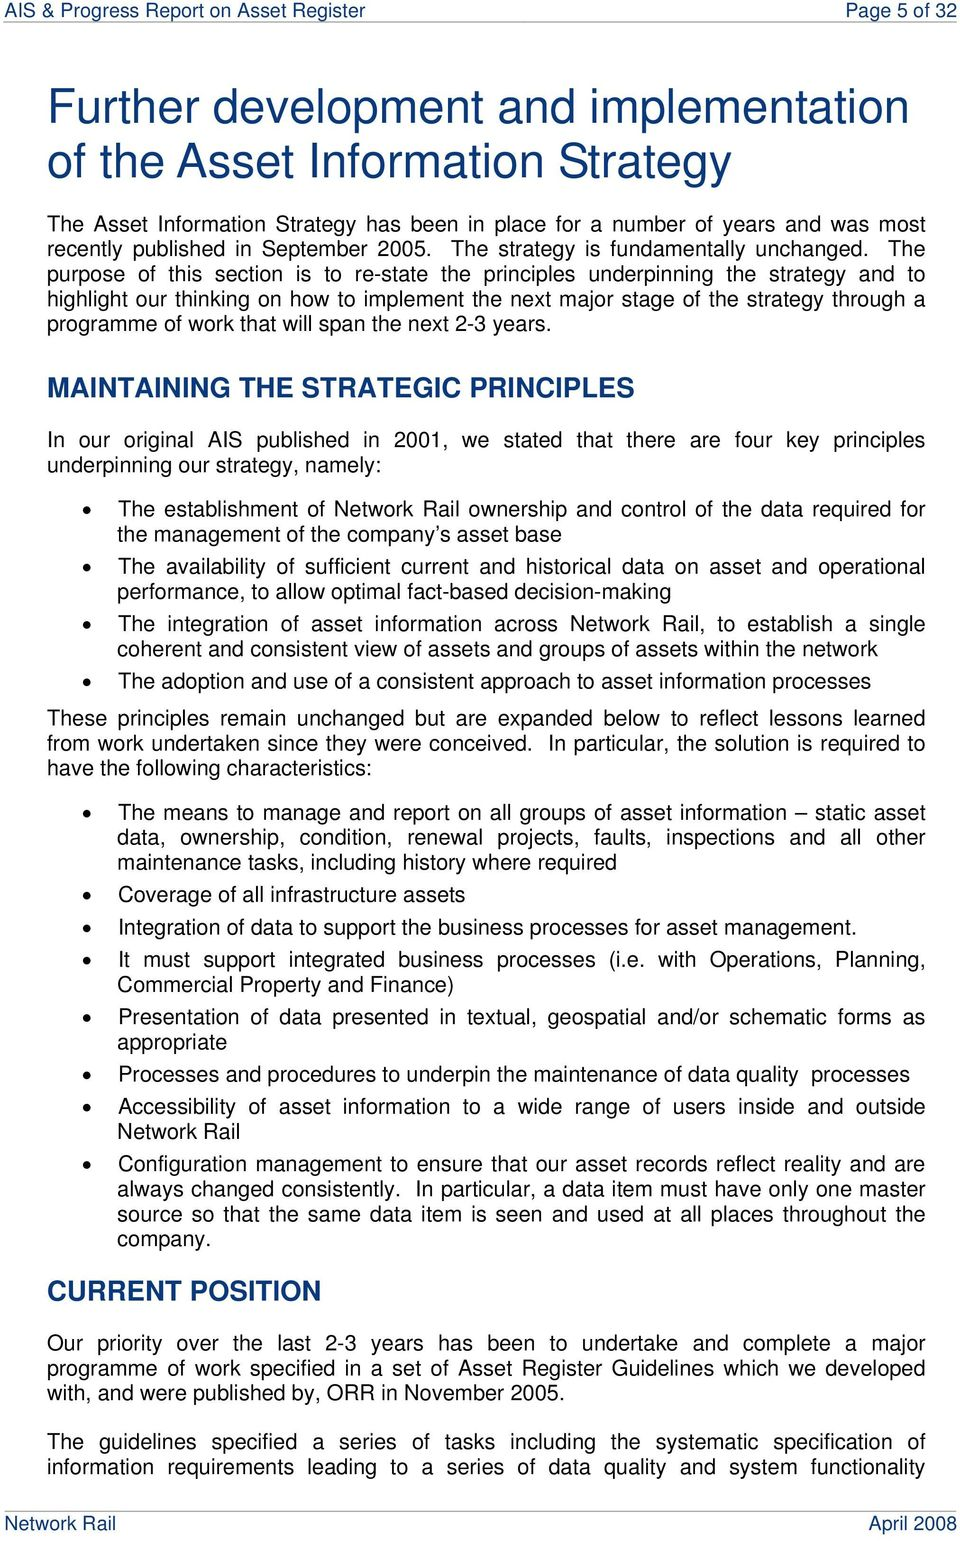 The purpose of this section is to re-state the principles underpinning the strategy and to highlight our thinking on how to implement the next major stage of the strategy through a programme of work